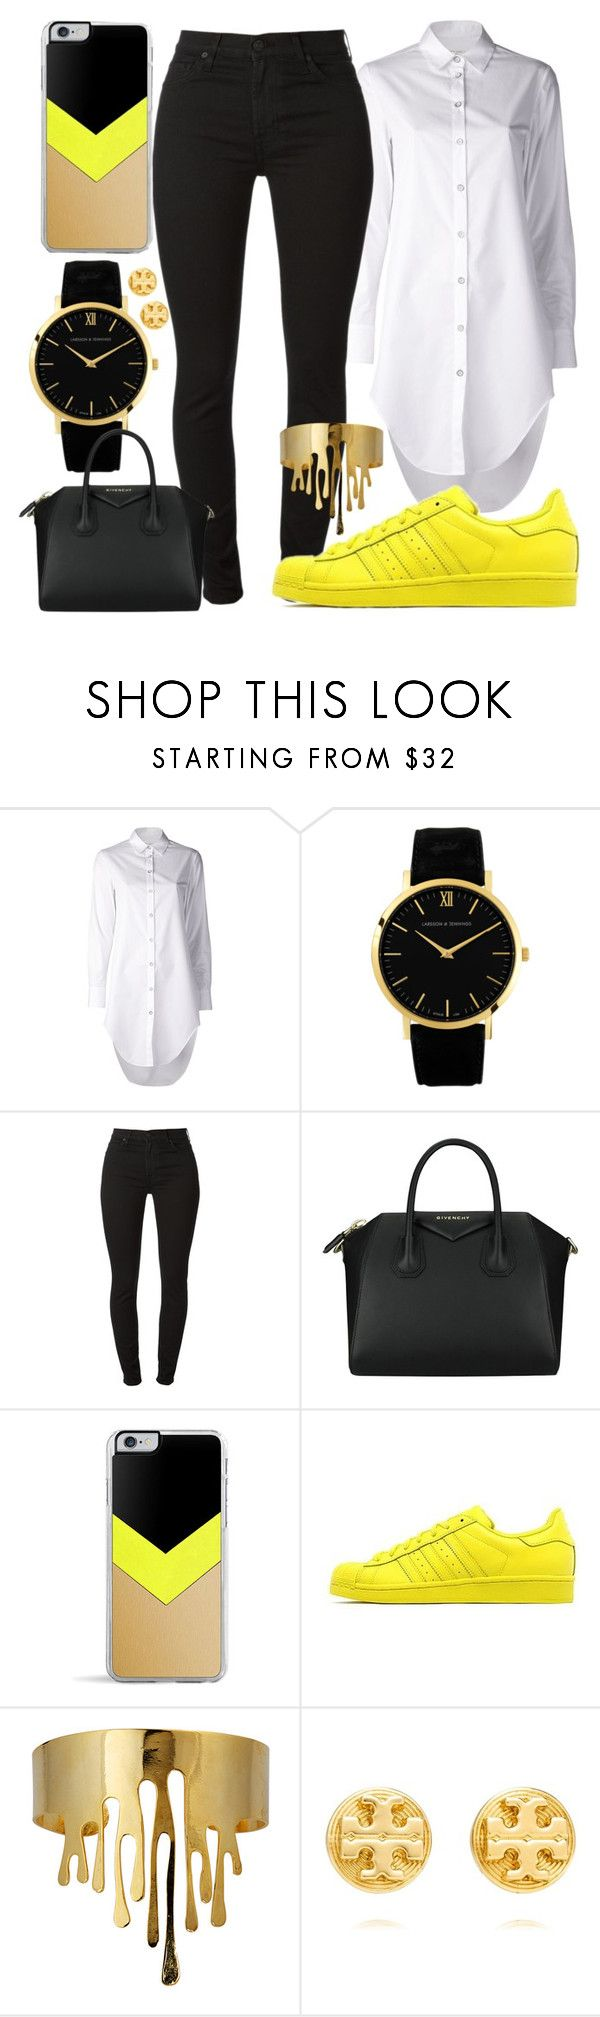 """434."" by tyra-bryant ❤ liked on Polyvore featuring rag & bone, Larsson & Jennings, 7 For All Mankind, Givenchy, Forever 21, adidas Originals, Eina Ahluwalia and Tory Burch"